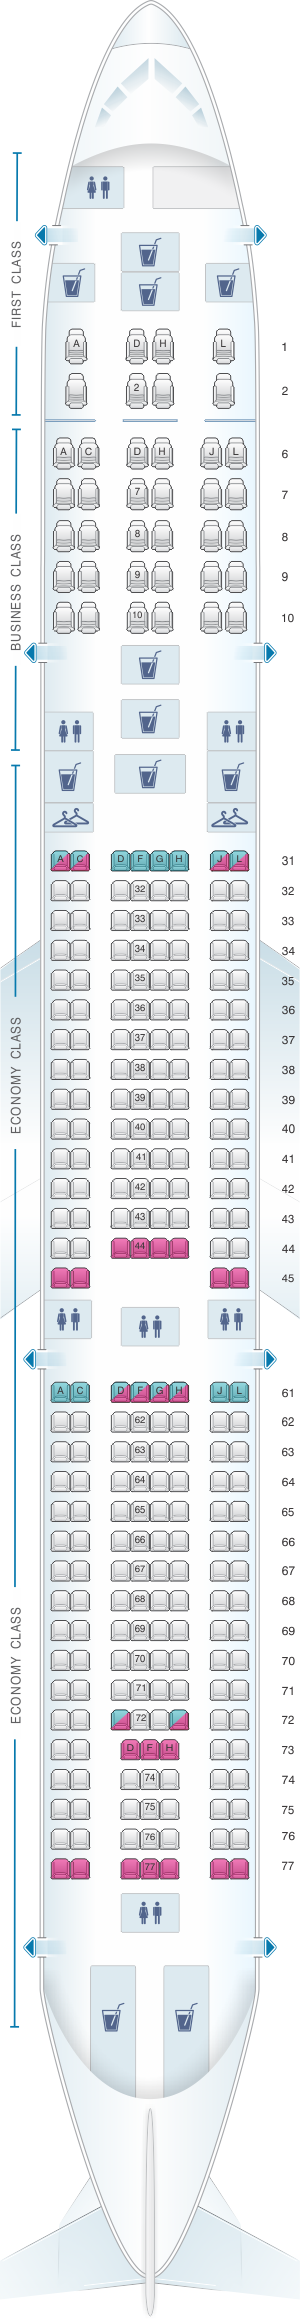 Seat map for China Eastern Airlines Airbus A340 300